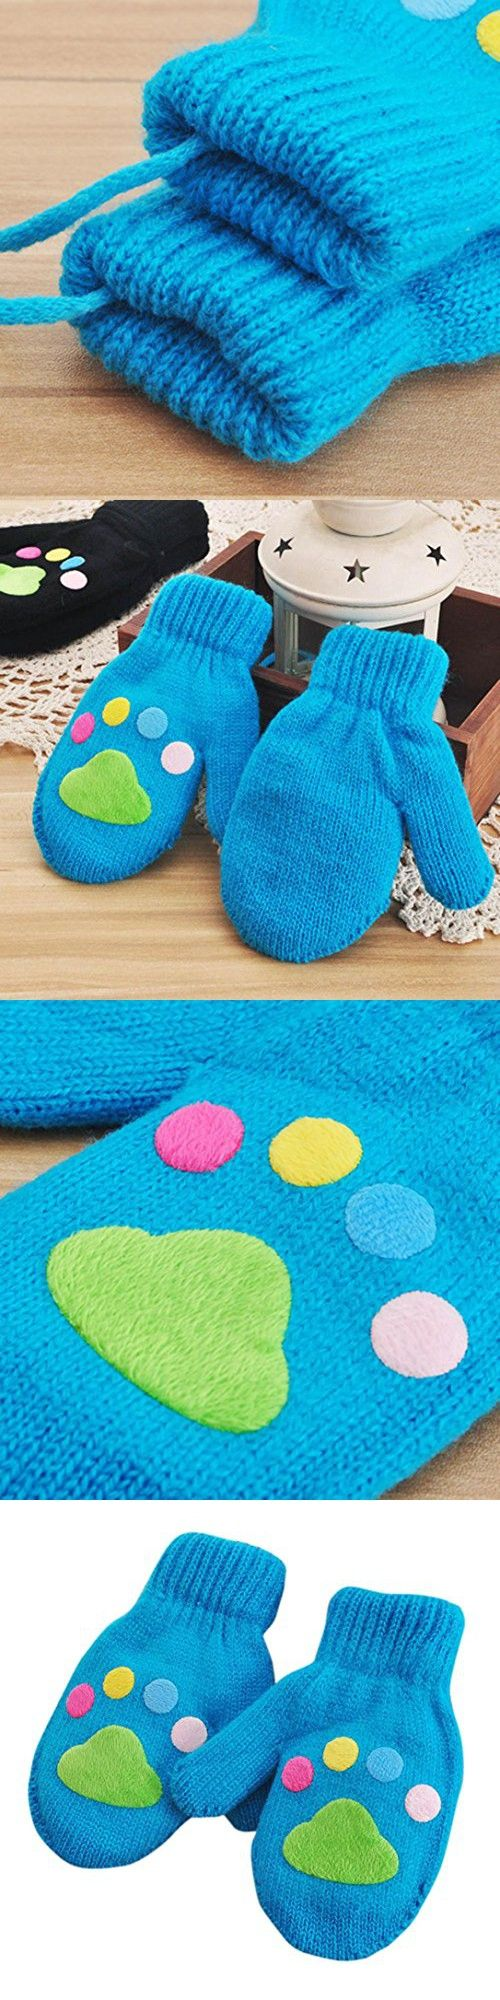 Voberry Infant Baby Boy Girls Lovely Winter Mittens Line Knitted Gloves with String Cute (Blue)